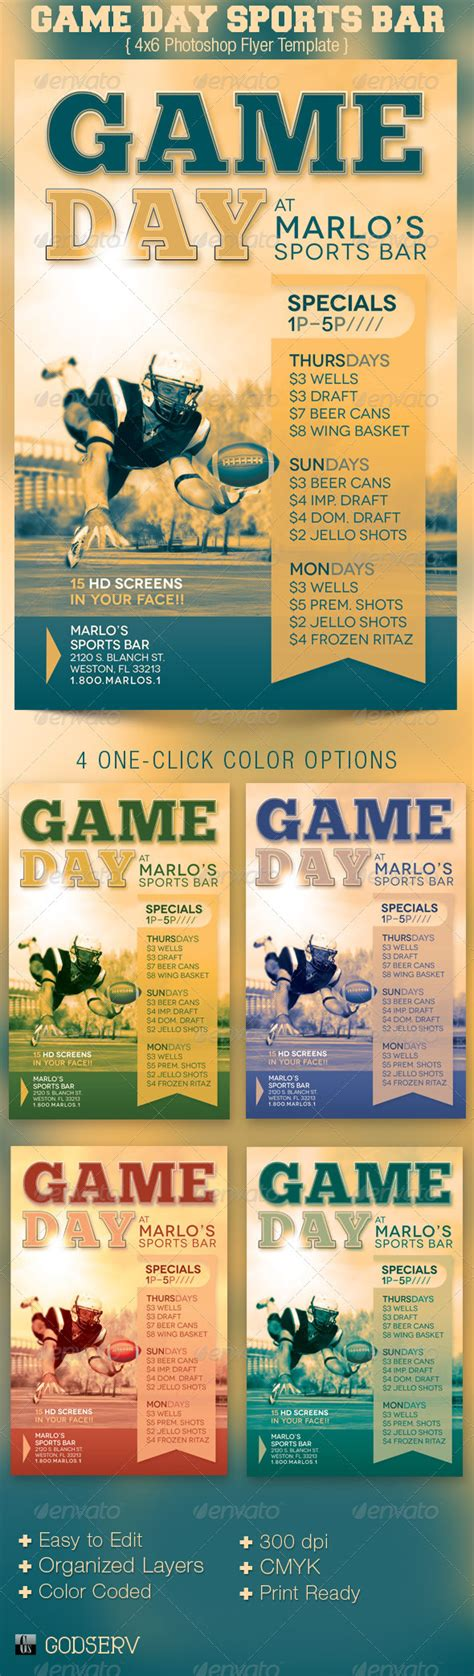 game day sports bar flyer template graphicriver